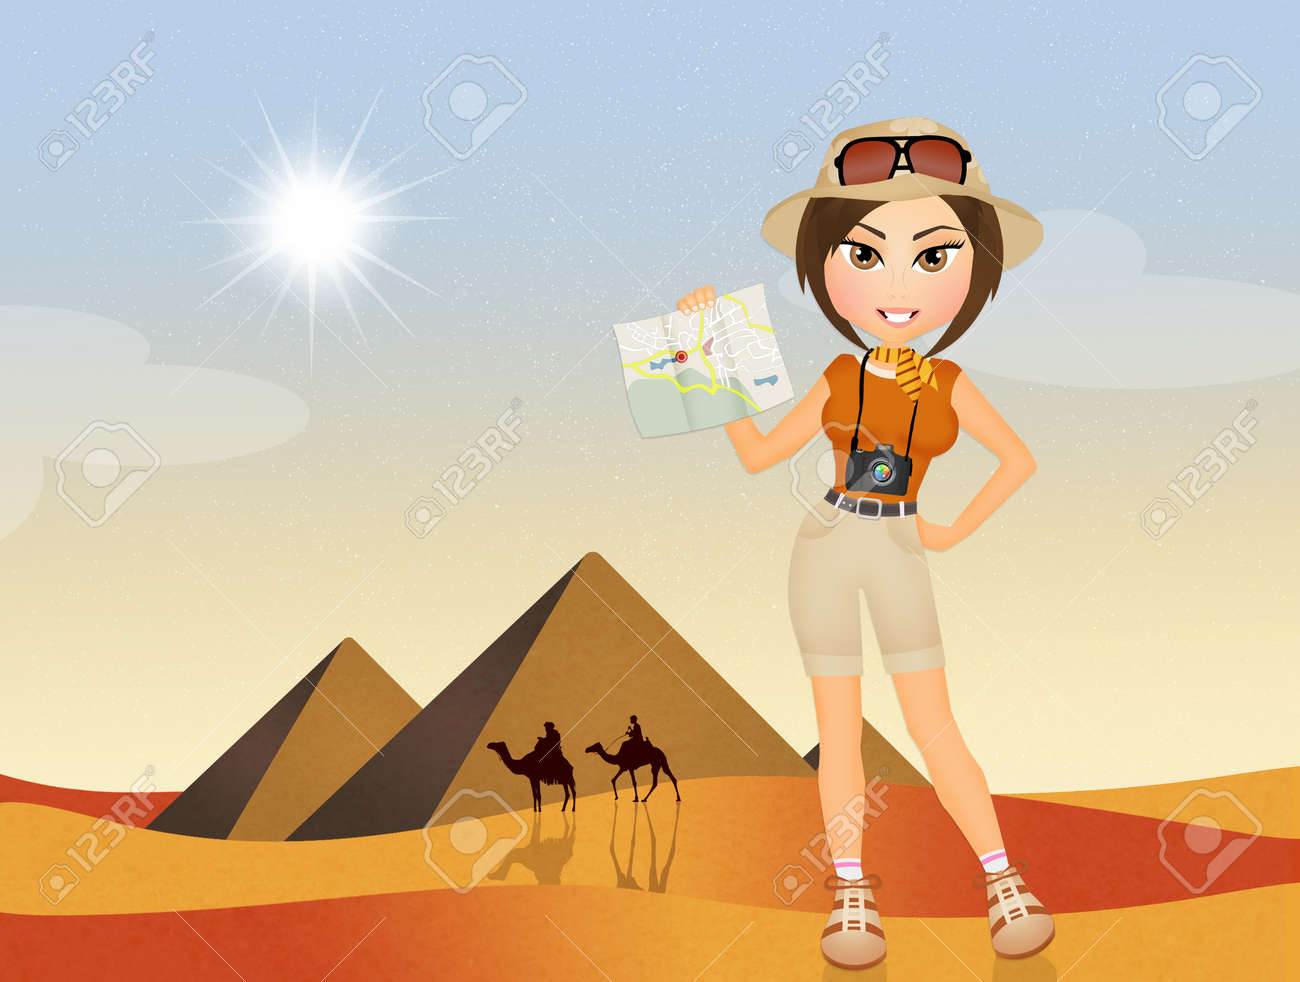 Tourist In Visiting And Image Photo 65808349 Royalty Image Free Egypt Stock Girl Pyramids Picture The